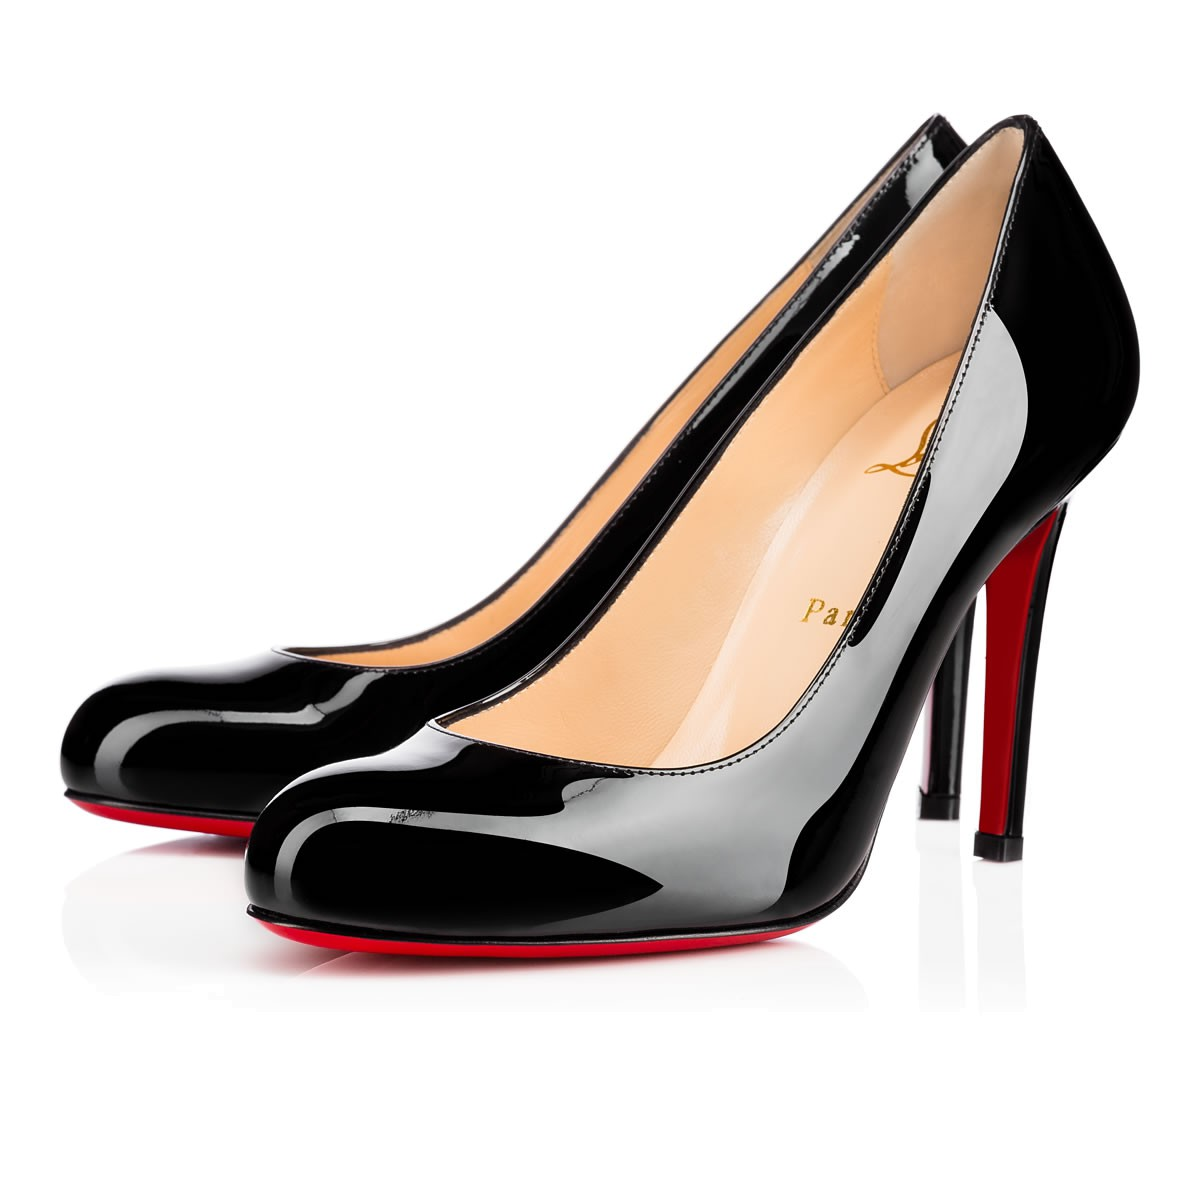 black pumps shoes - simple pump - christian louboutin ... LXRTSAG